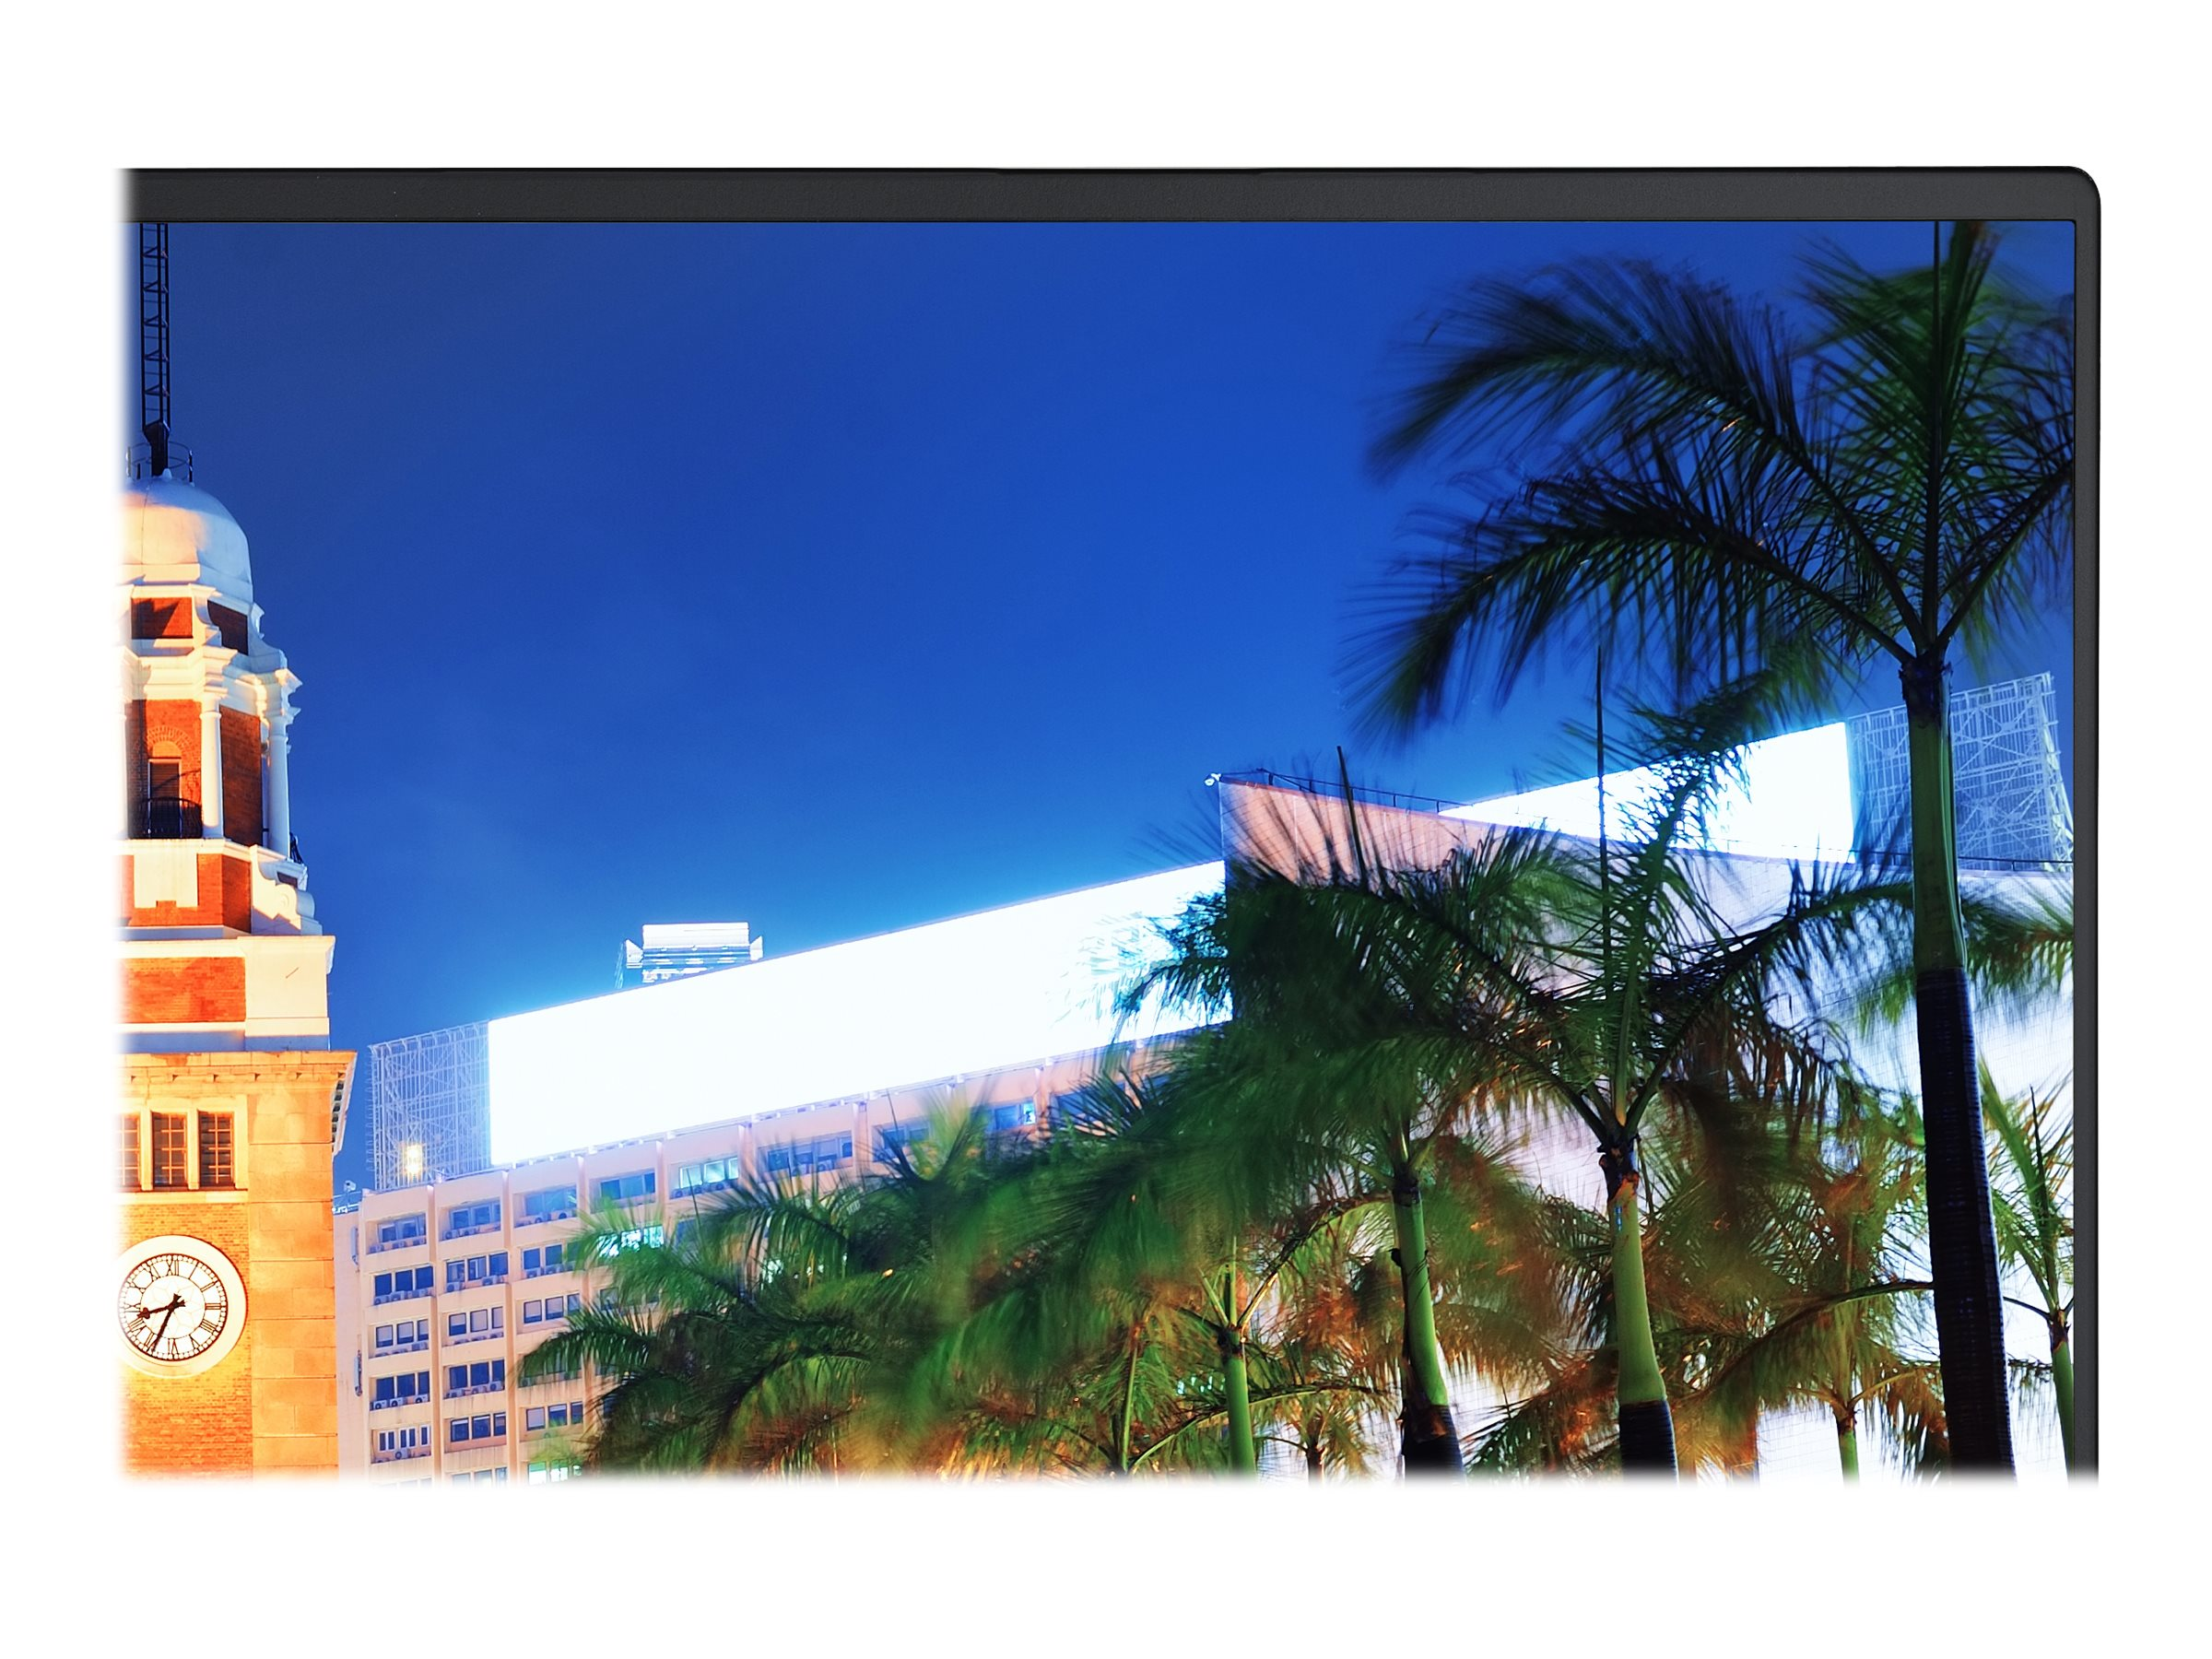 NEC (4) 55 X555UNS Full HD 2x2 Video Wall Bundle, X555UNS-TMX4P